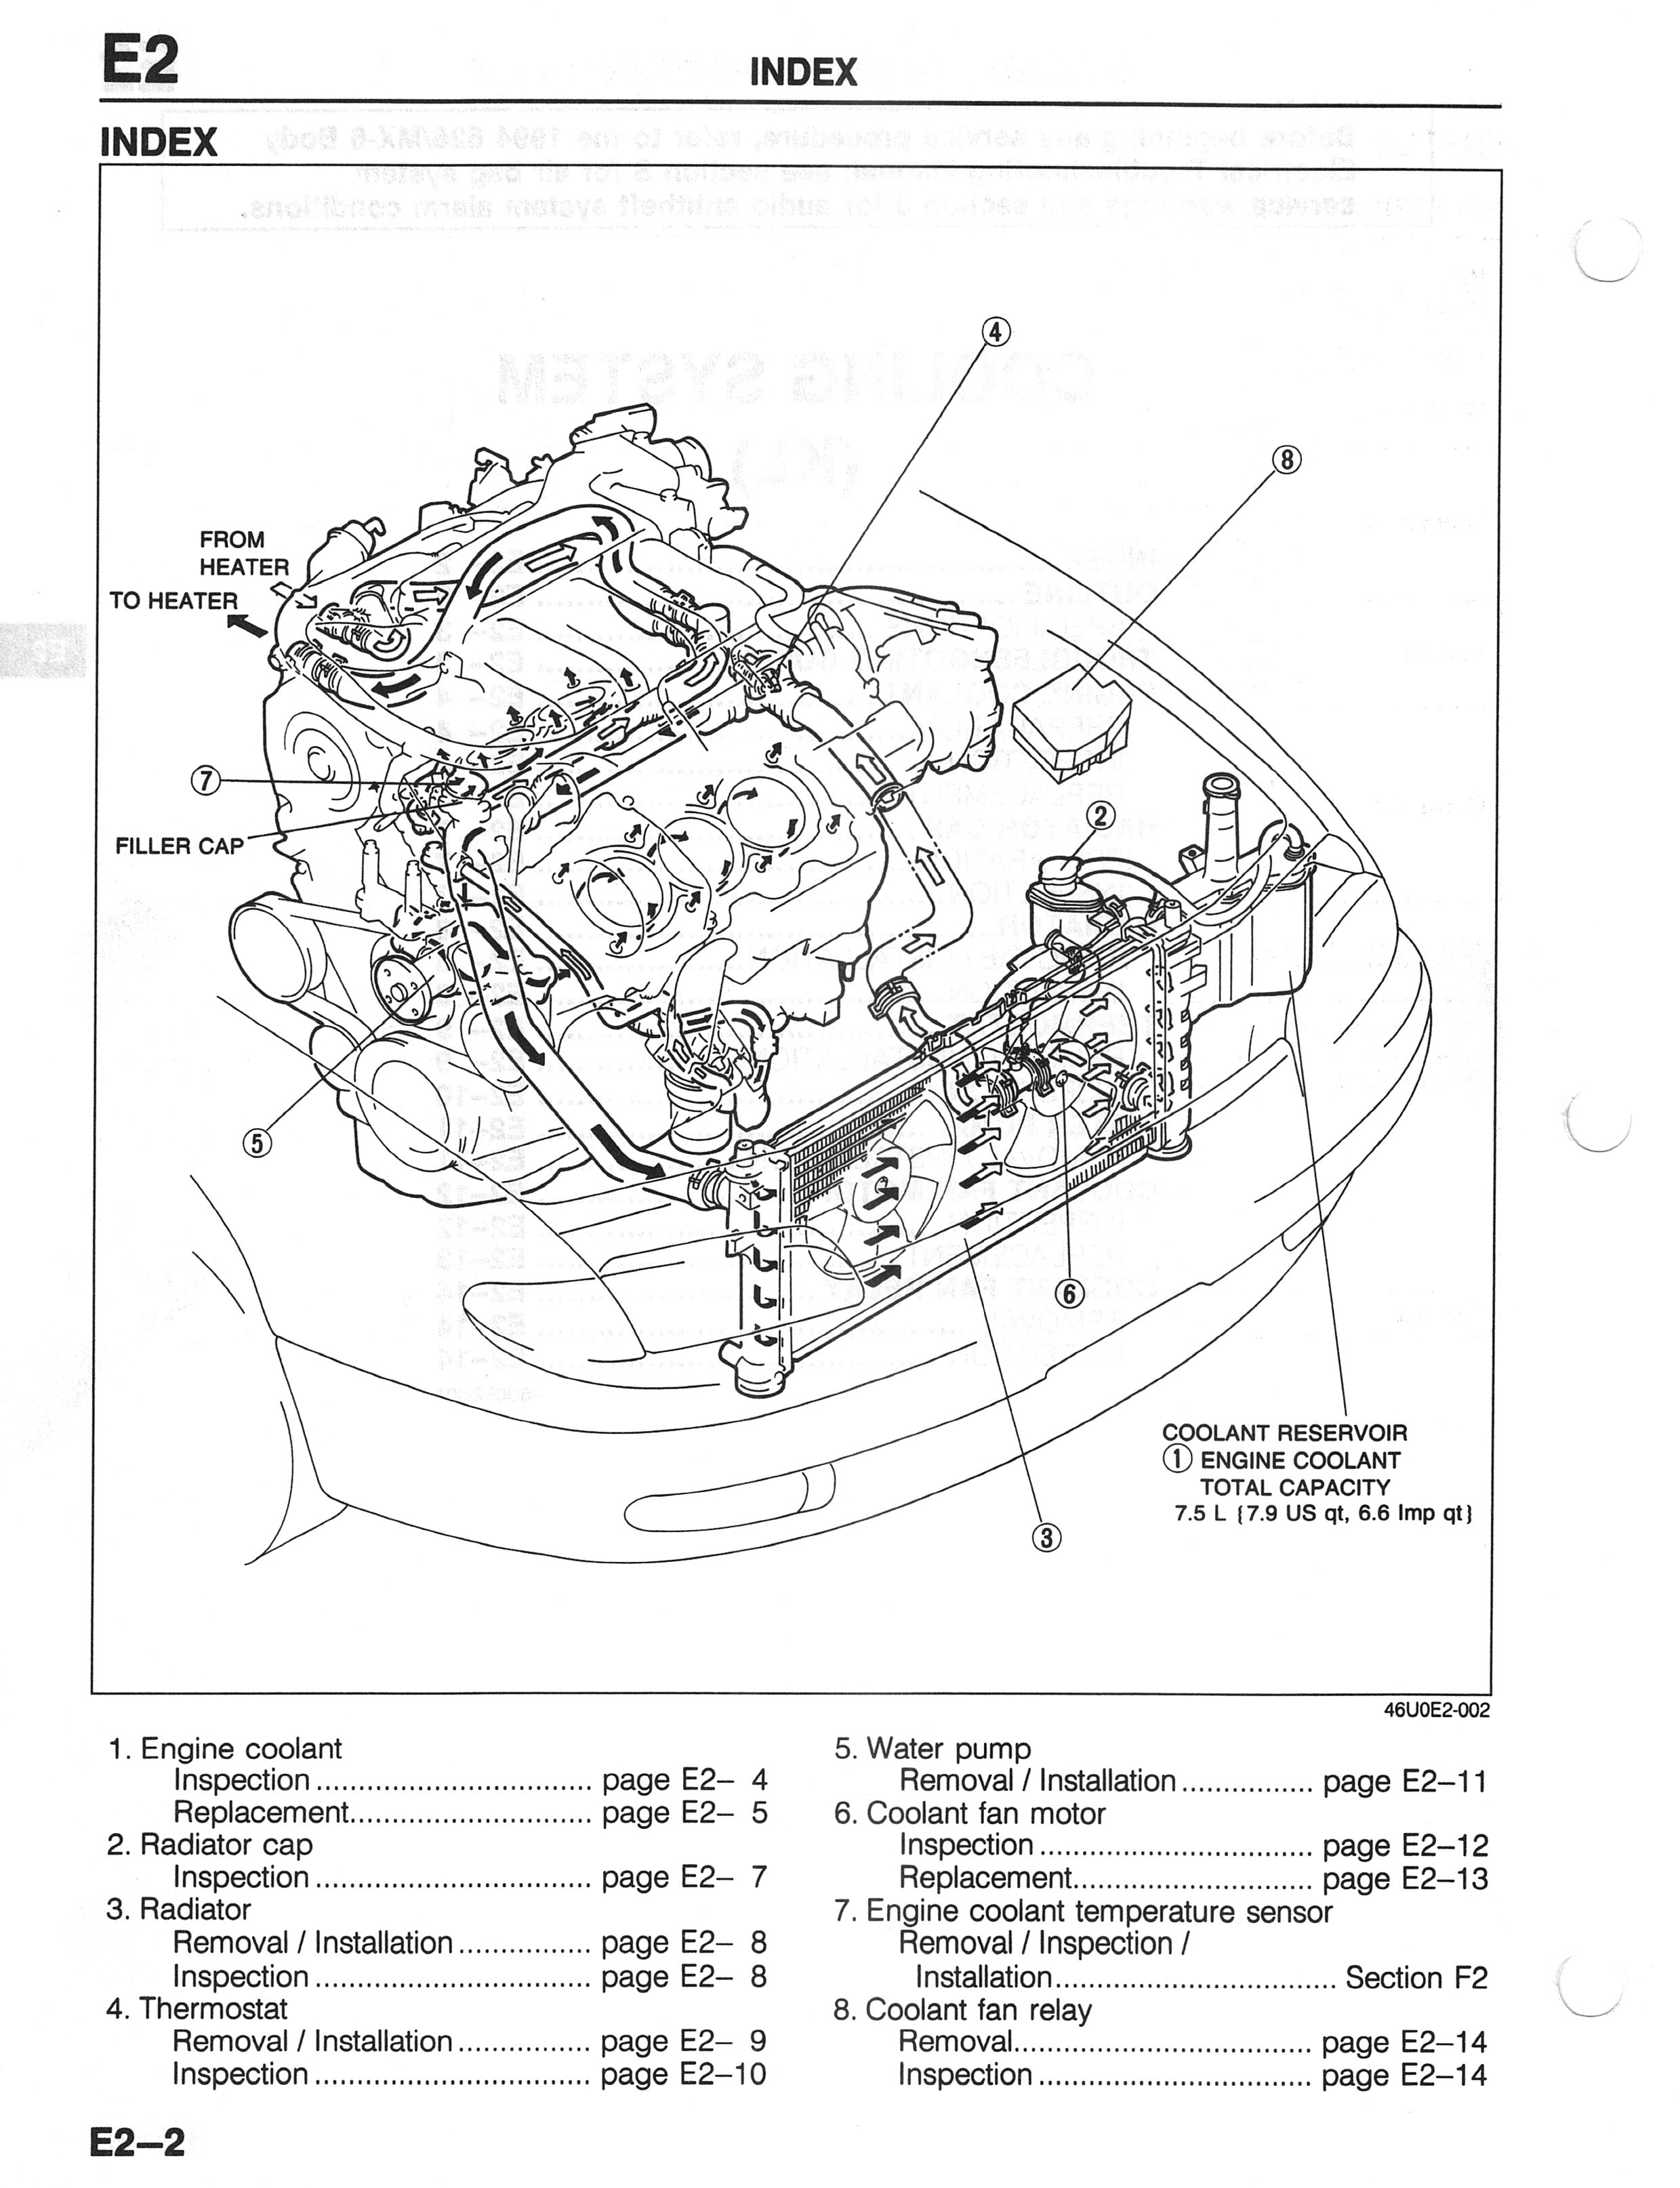 2004 Mazda Tribute Engine Diagram Mazda Mx 5 Wiring Diagram Mazda Wiring  Diagrams Instructions Of 2004